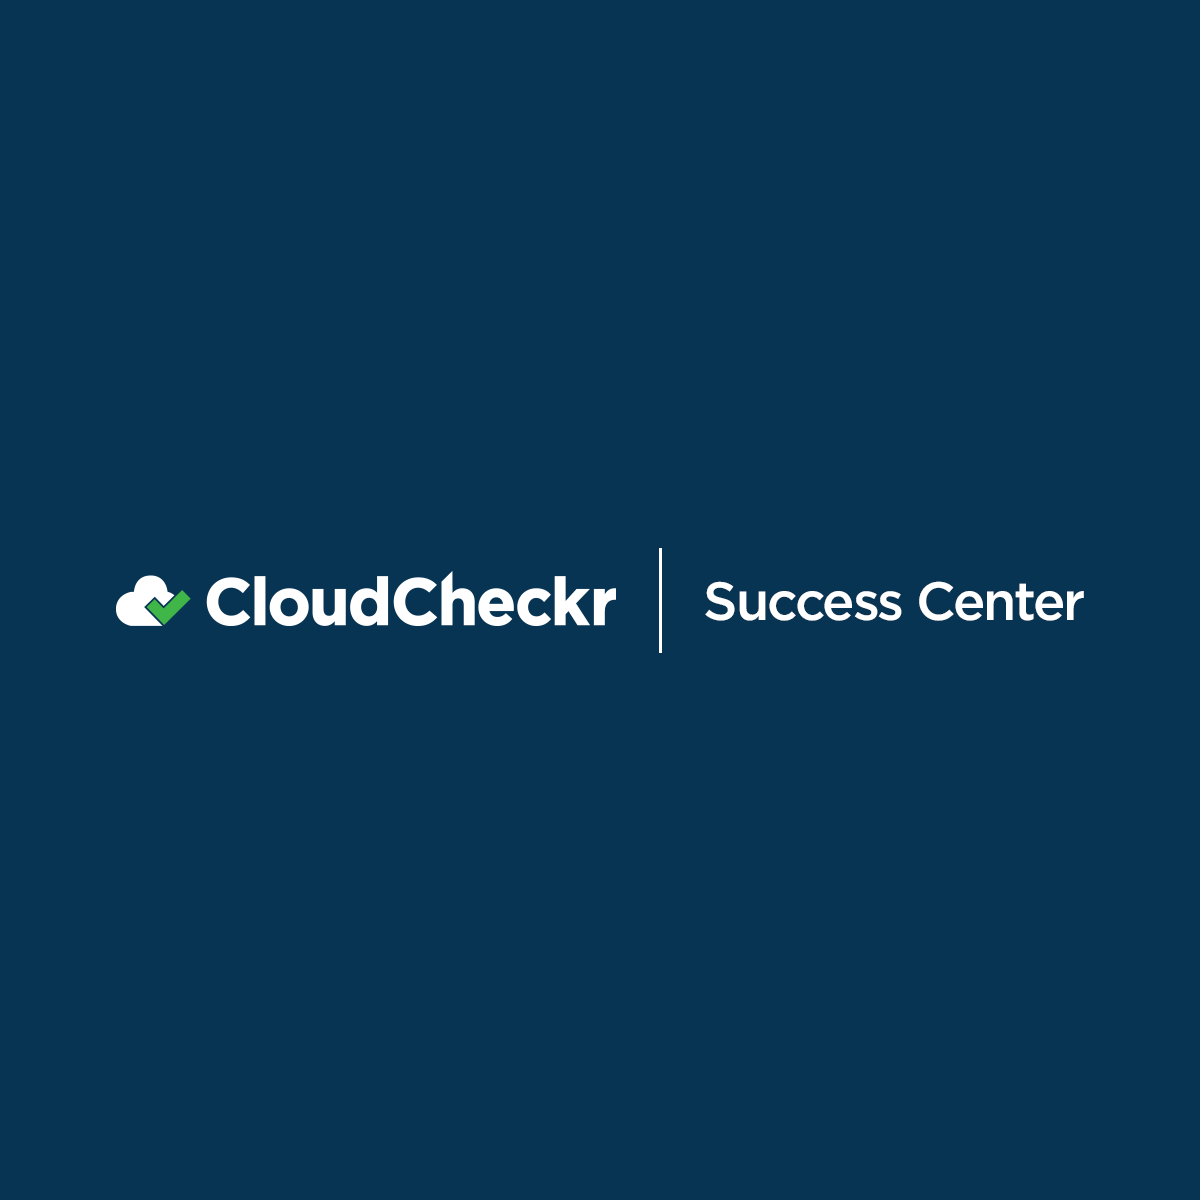 Complete IAM Policy - CloudCheckr Success Center